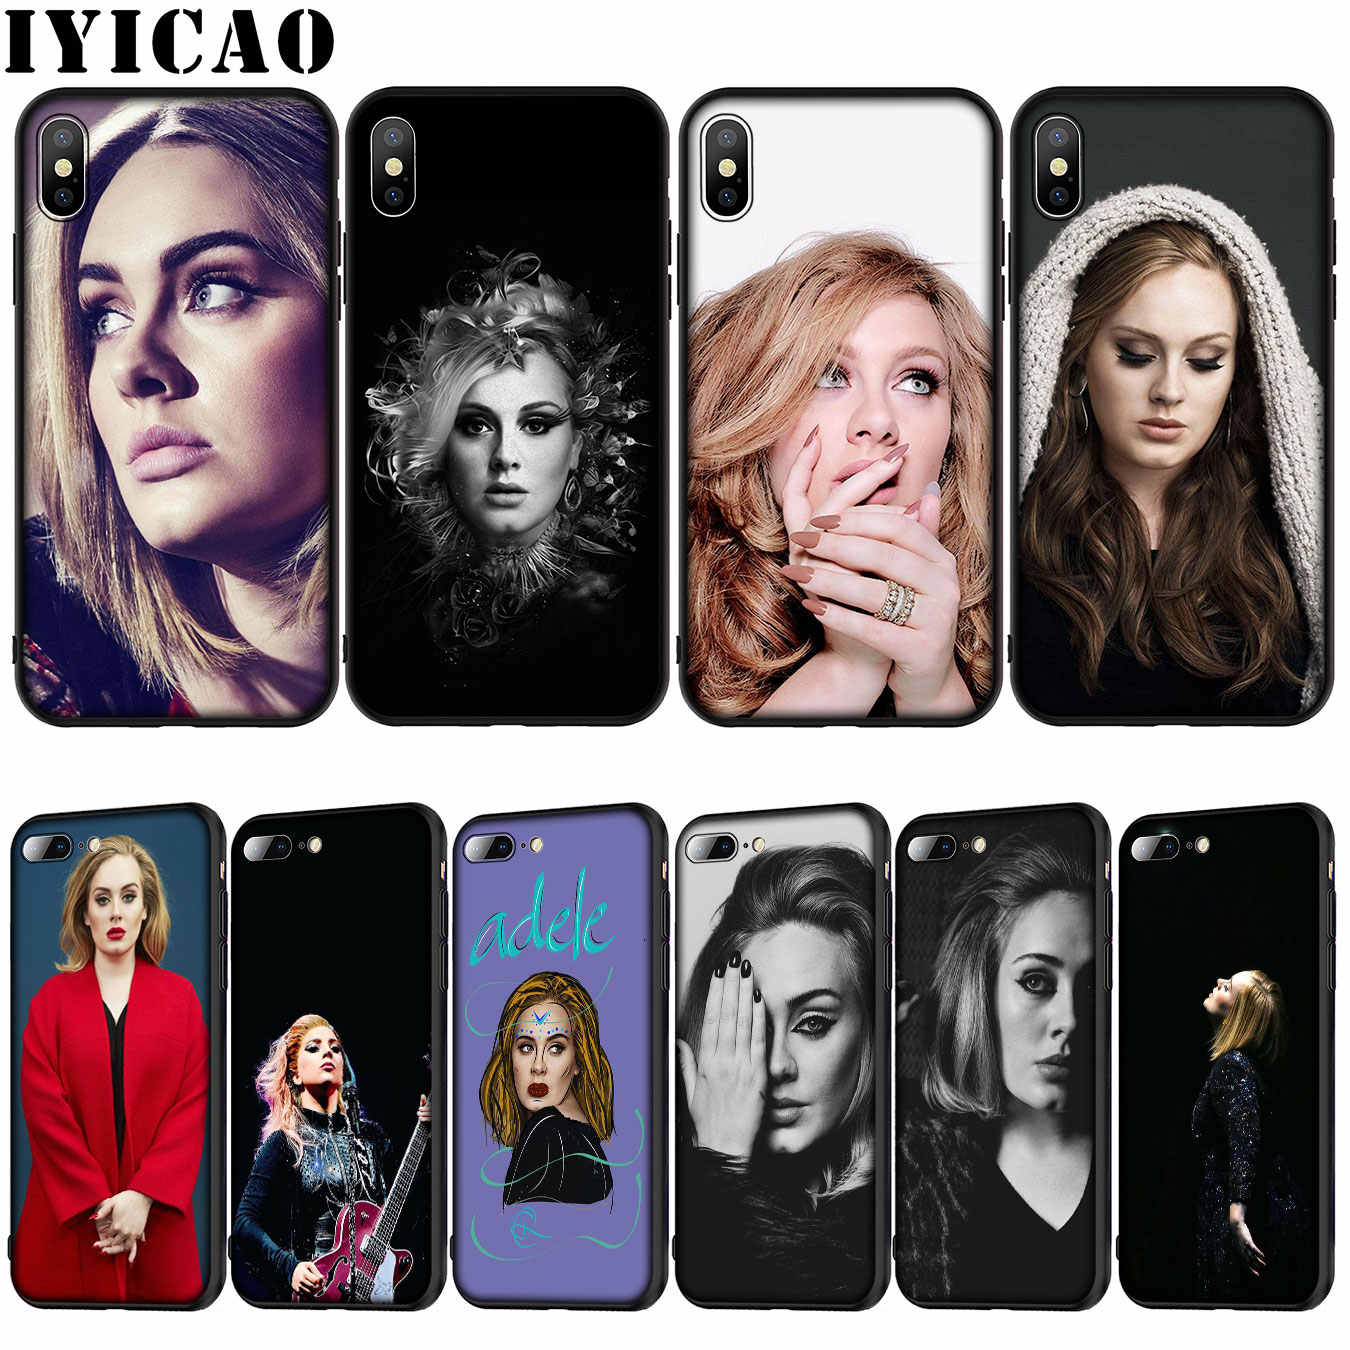 IYICAO Adele Adkins Silicone Mềm Cover cho iPhone XR X XS 11 Pro Max 10 6 6S 7 8 Plus 5 5S SE Ốp Lưng Điện Thoại